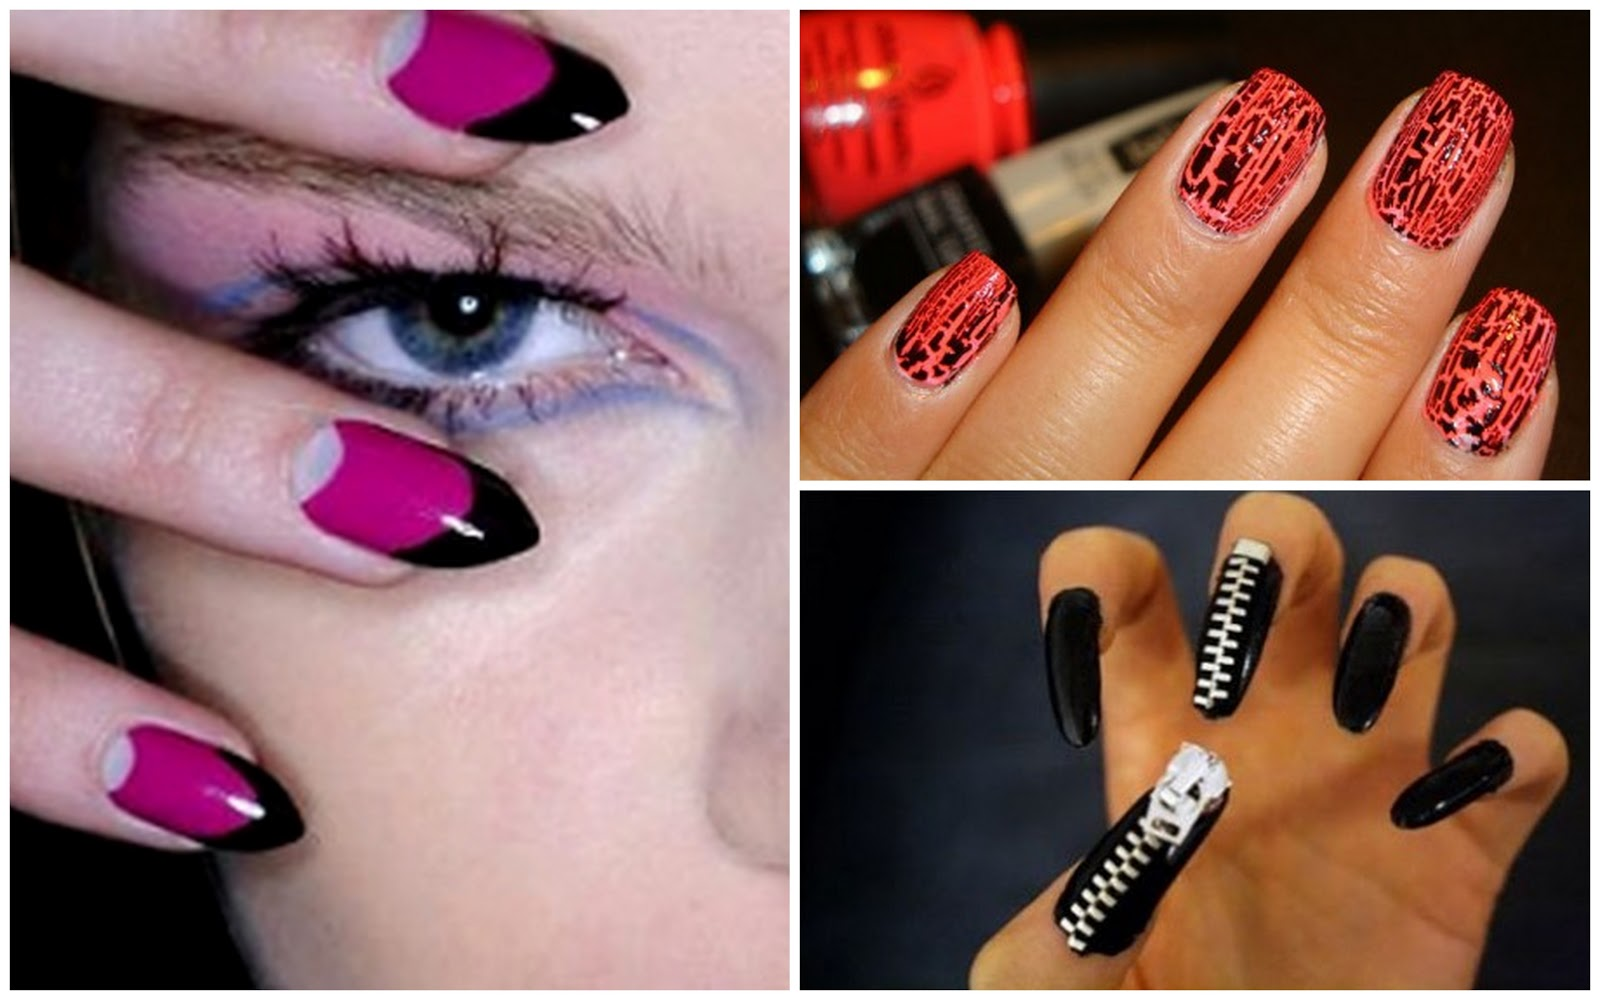 latest nail art designs 2013 2014 wallpapers pictures fashion mobile shayari. Black Bedroom Furniture Sets. Home Design Ideas